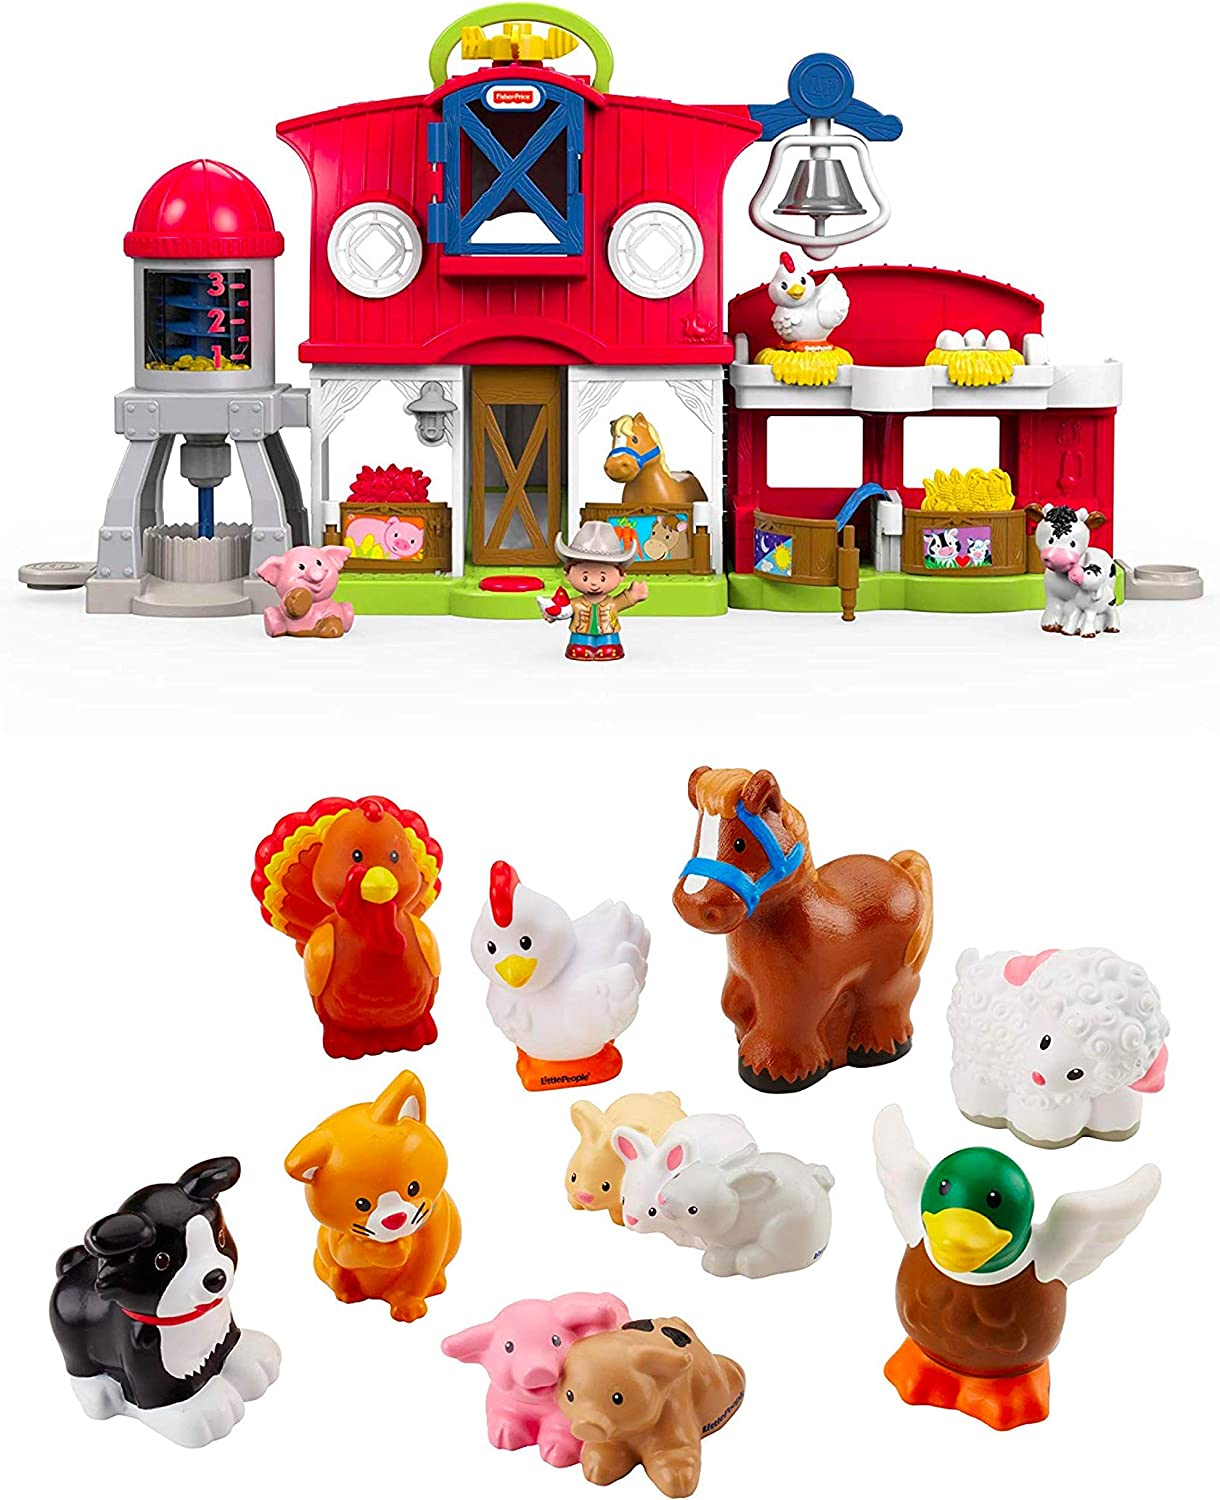 Amazon Com Fisher Price Little People Caring For Animals Farm Set Bundled Little People Farm Animal Friends With Baby Bunnies Piglets Toys Games